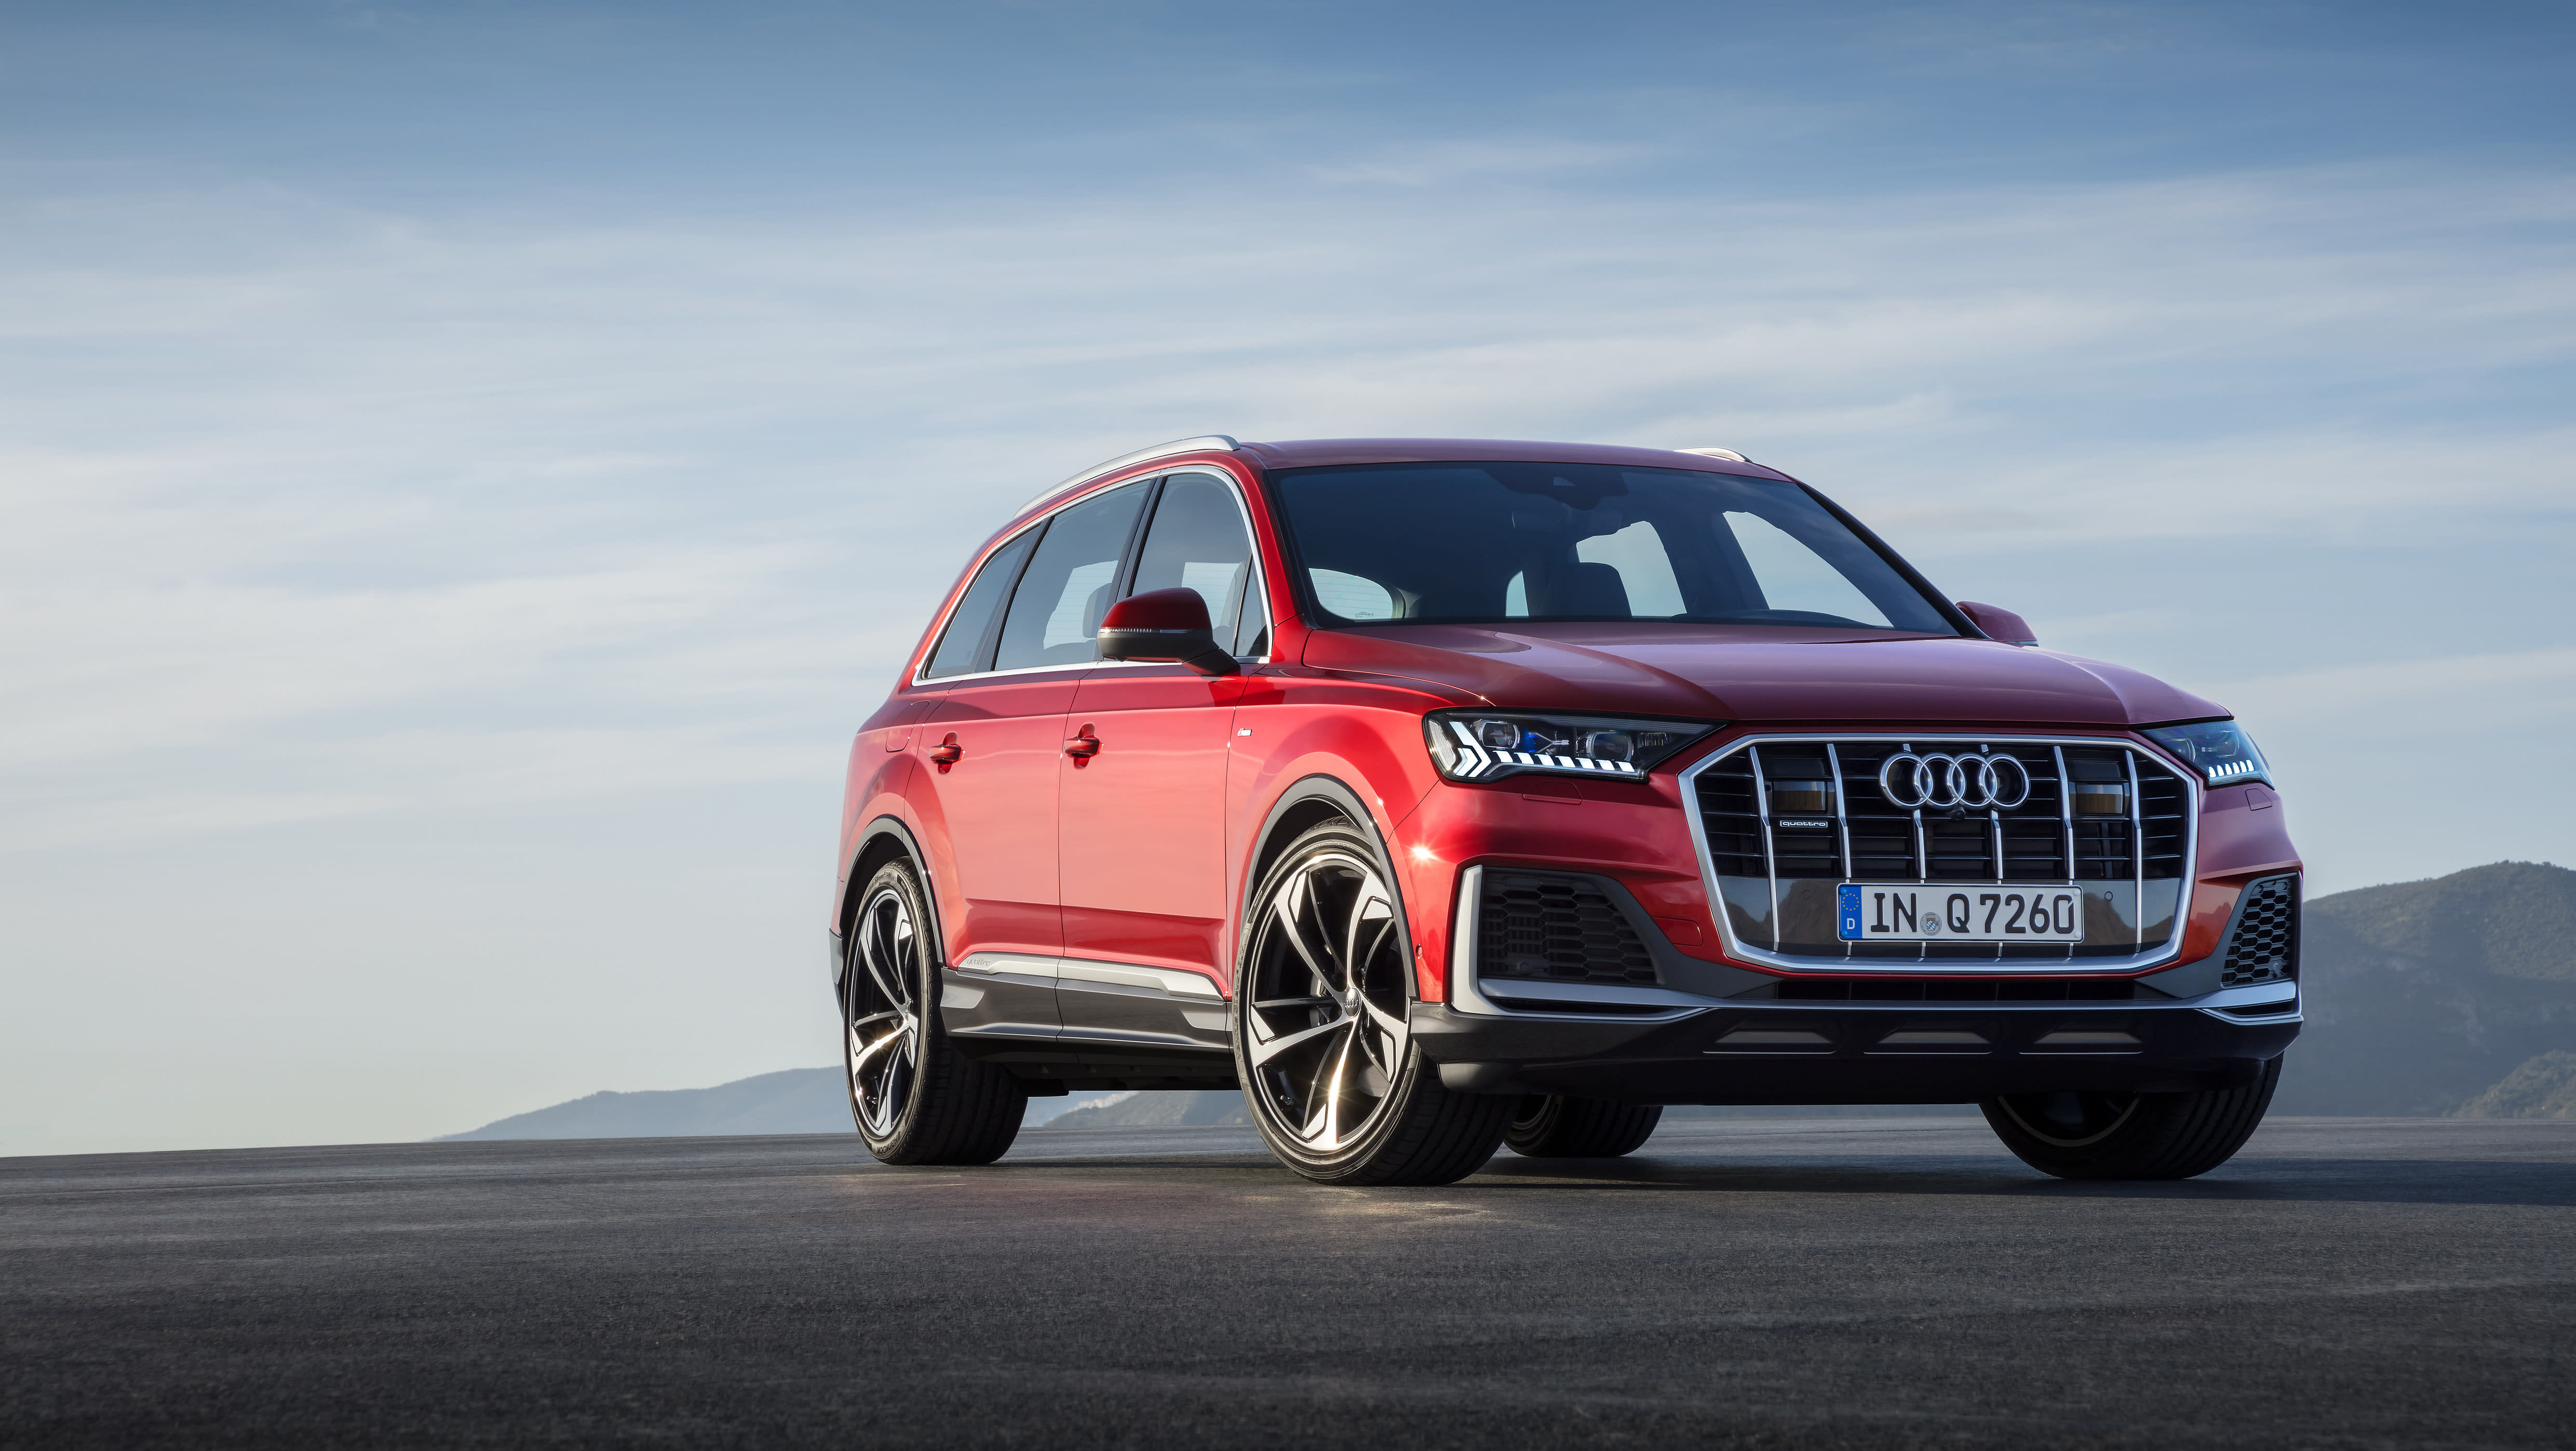 Audi Q7 2020 Revealed New Styling And Interior For Brand S Biggest Suv Car News Carsguide